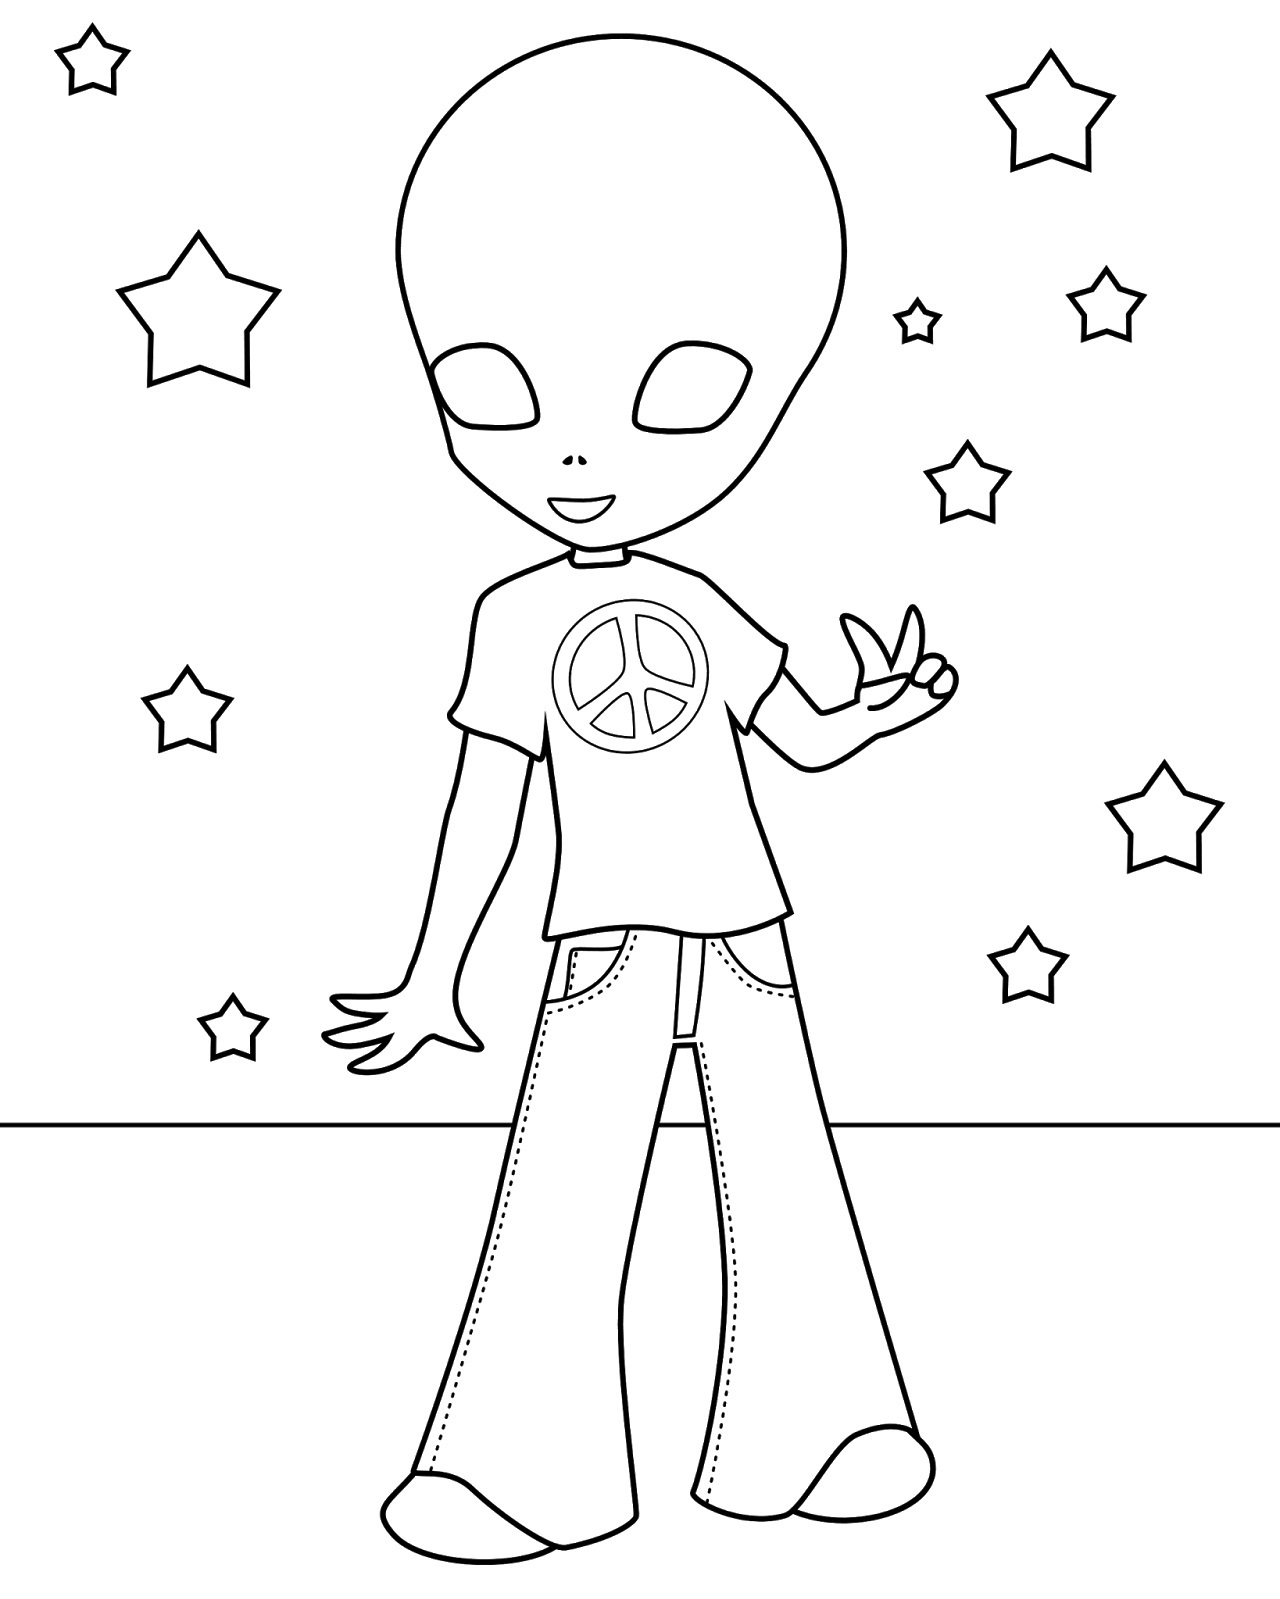 coloring pages aliens - photo#11